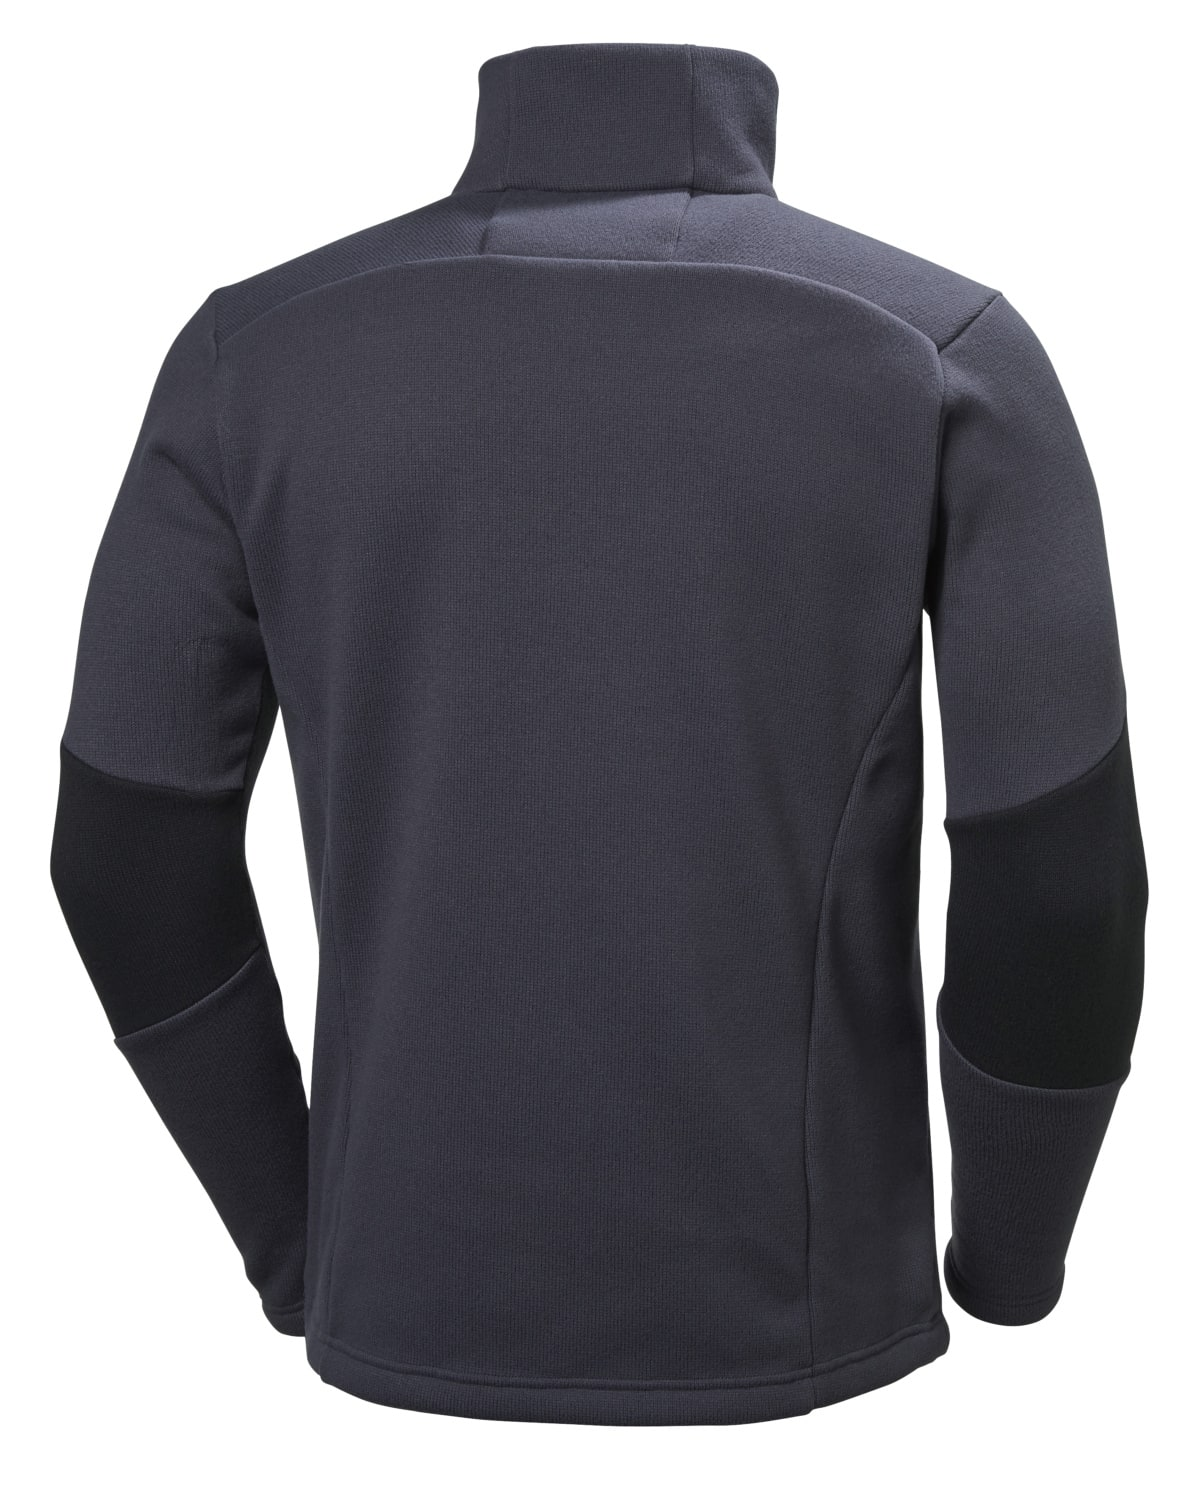 Helly Hansen EQ Black Midlayer Jacket – Graphite BL